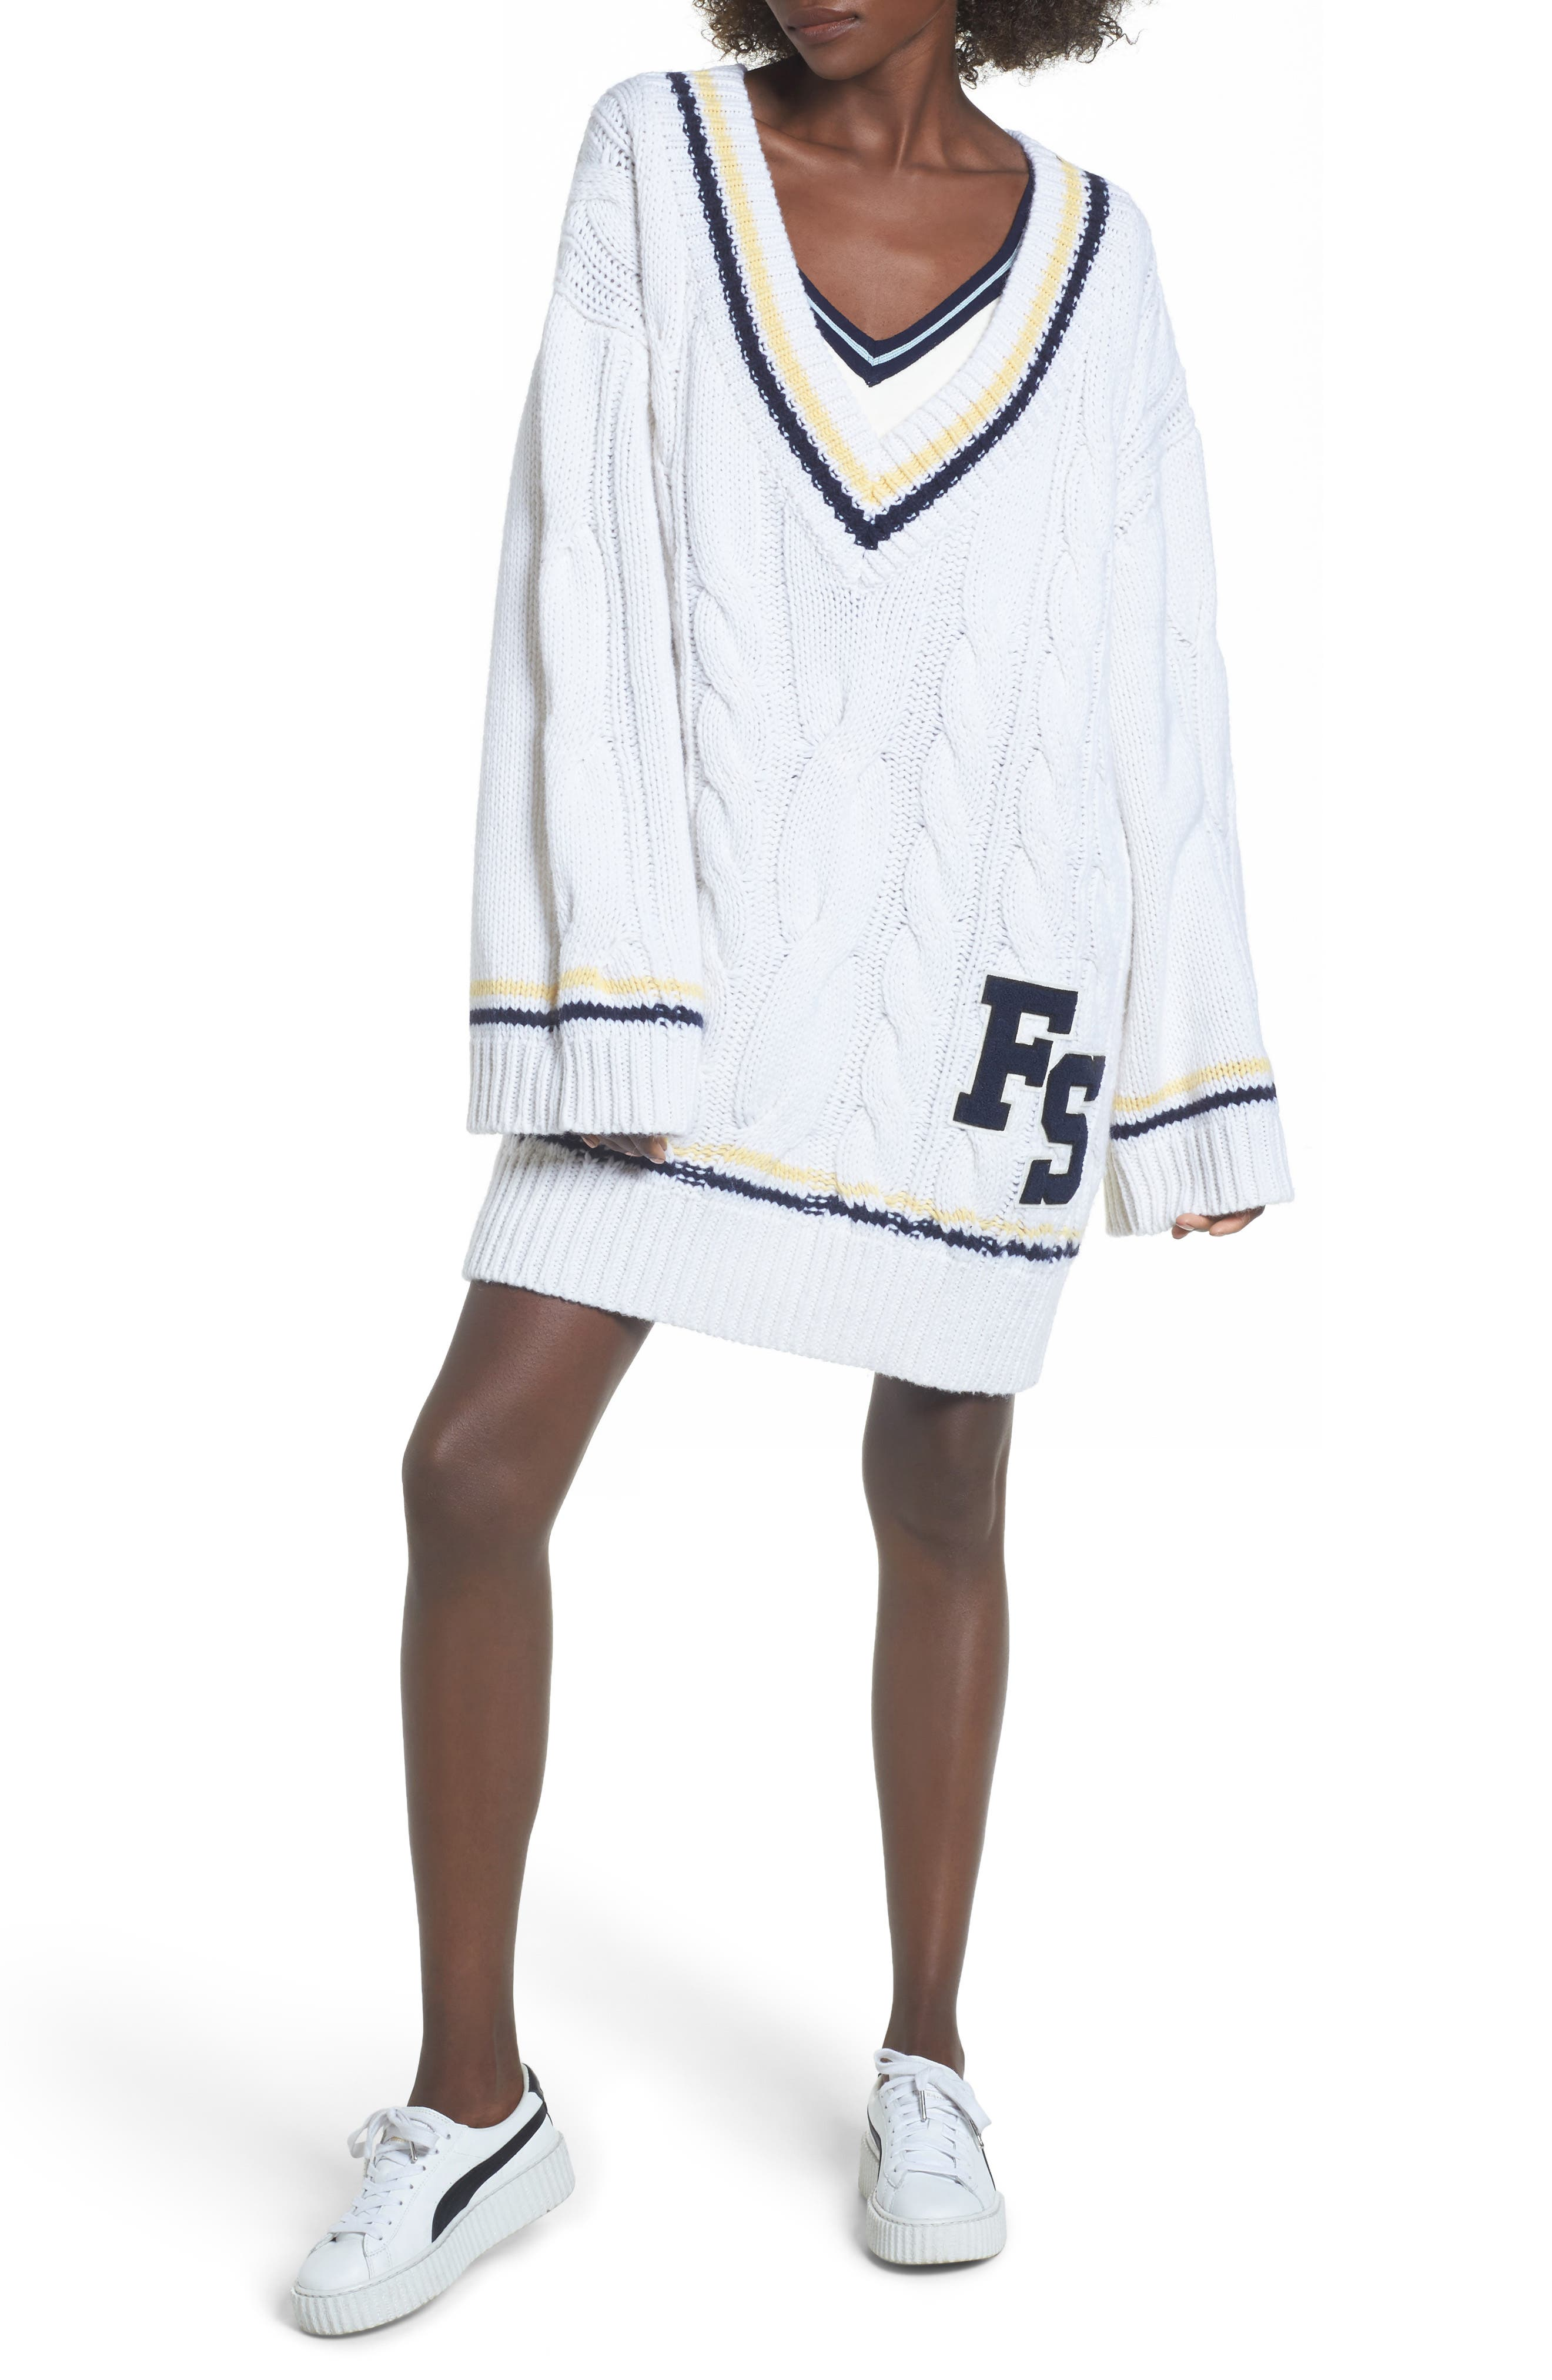 PUMA by Rihanna Longline Cable Knit Sweater,                         Main,                         color, Ivory